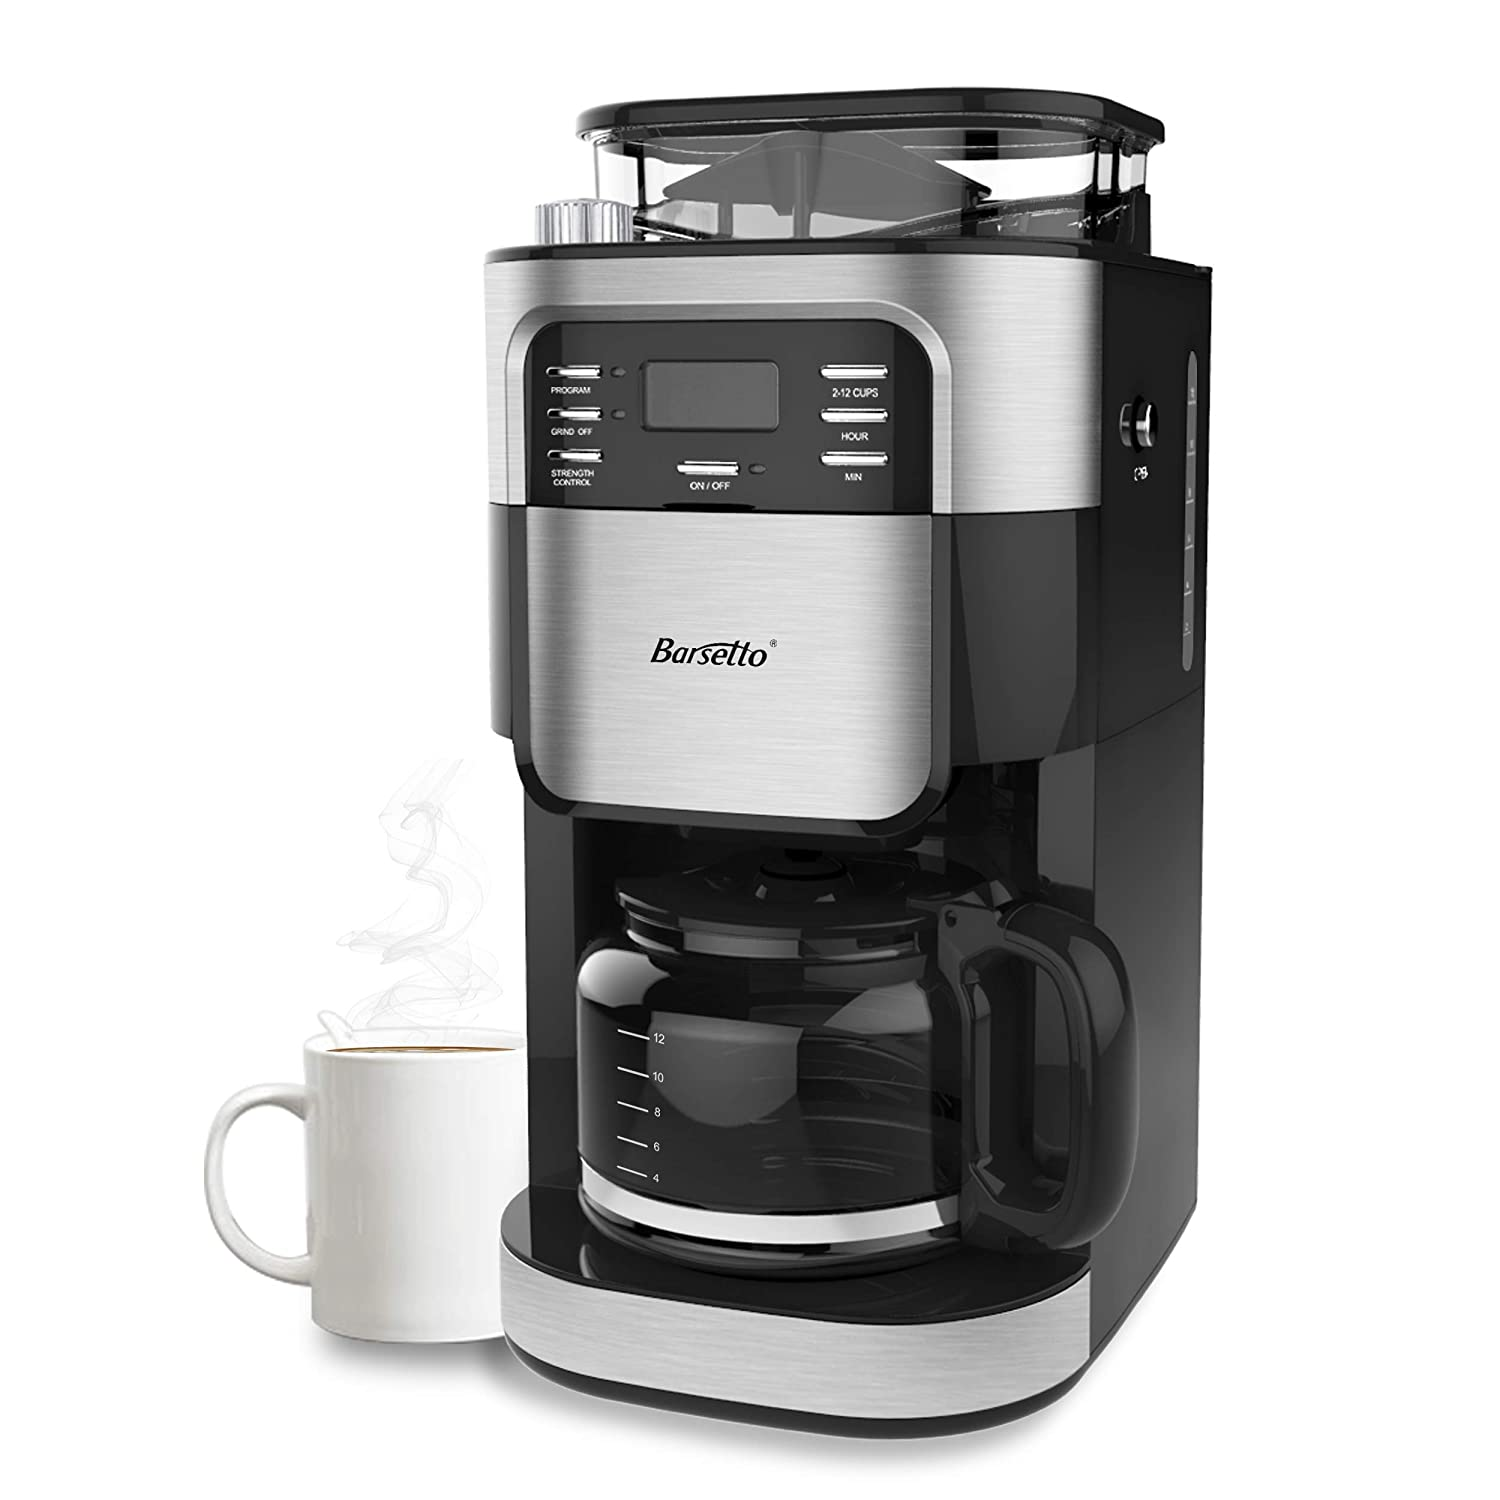 Barsetto Grind and Brew Automatic Coffee Maker with Digital Programmalbe Drip Coffee Machine,10-Cups,Black